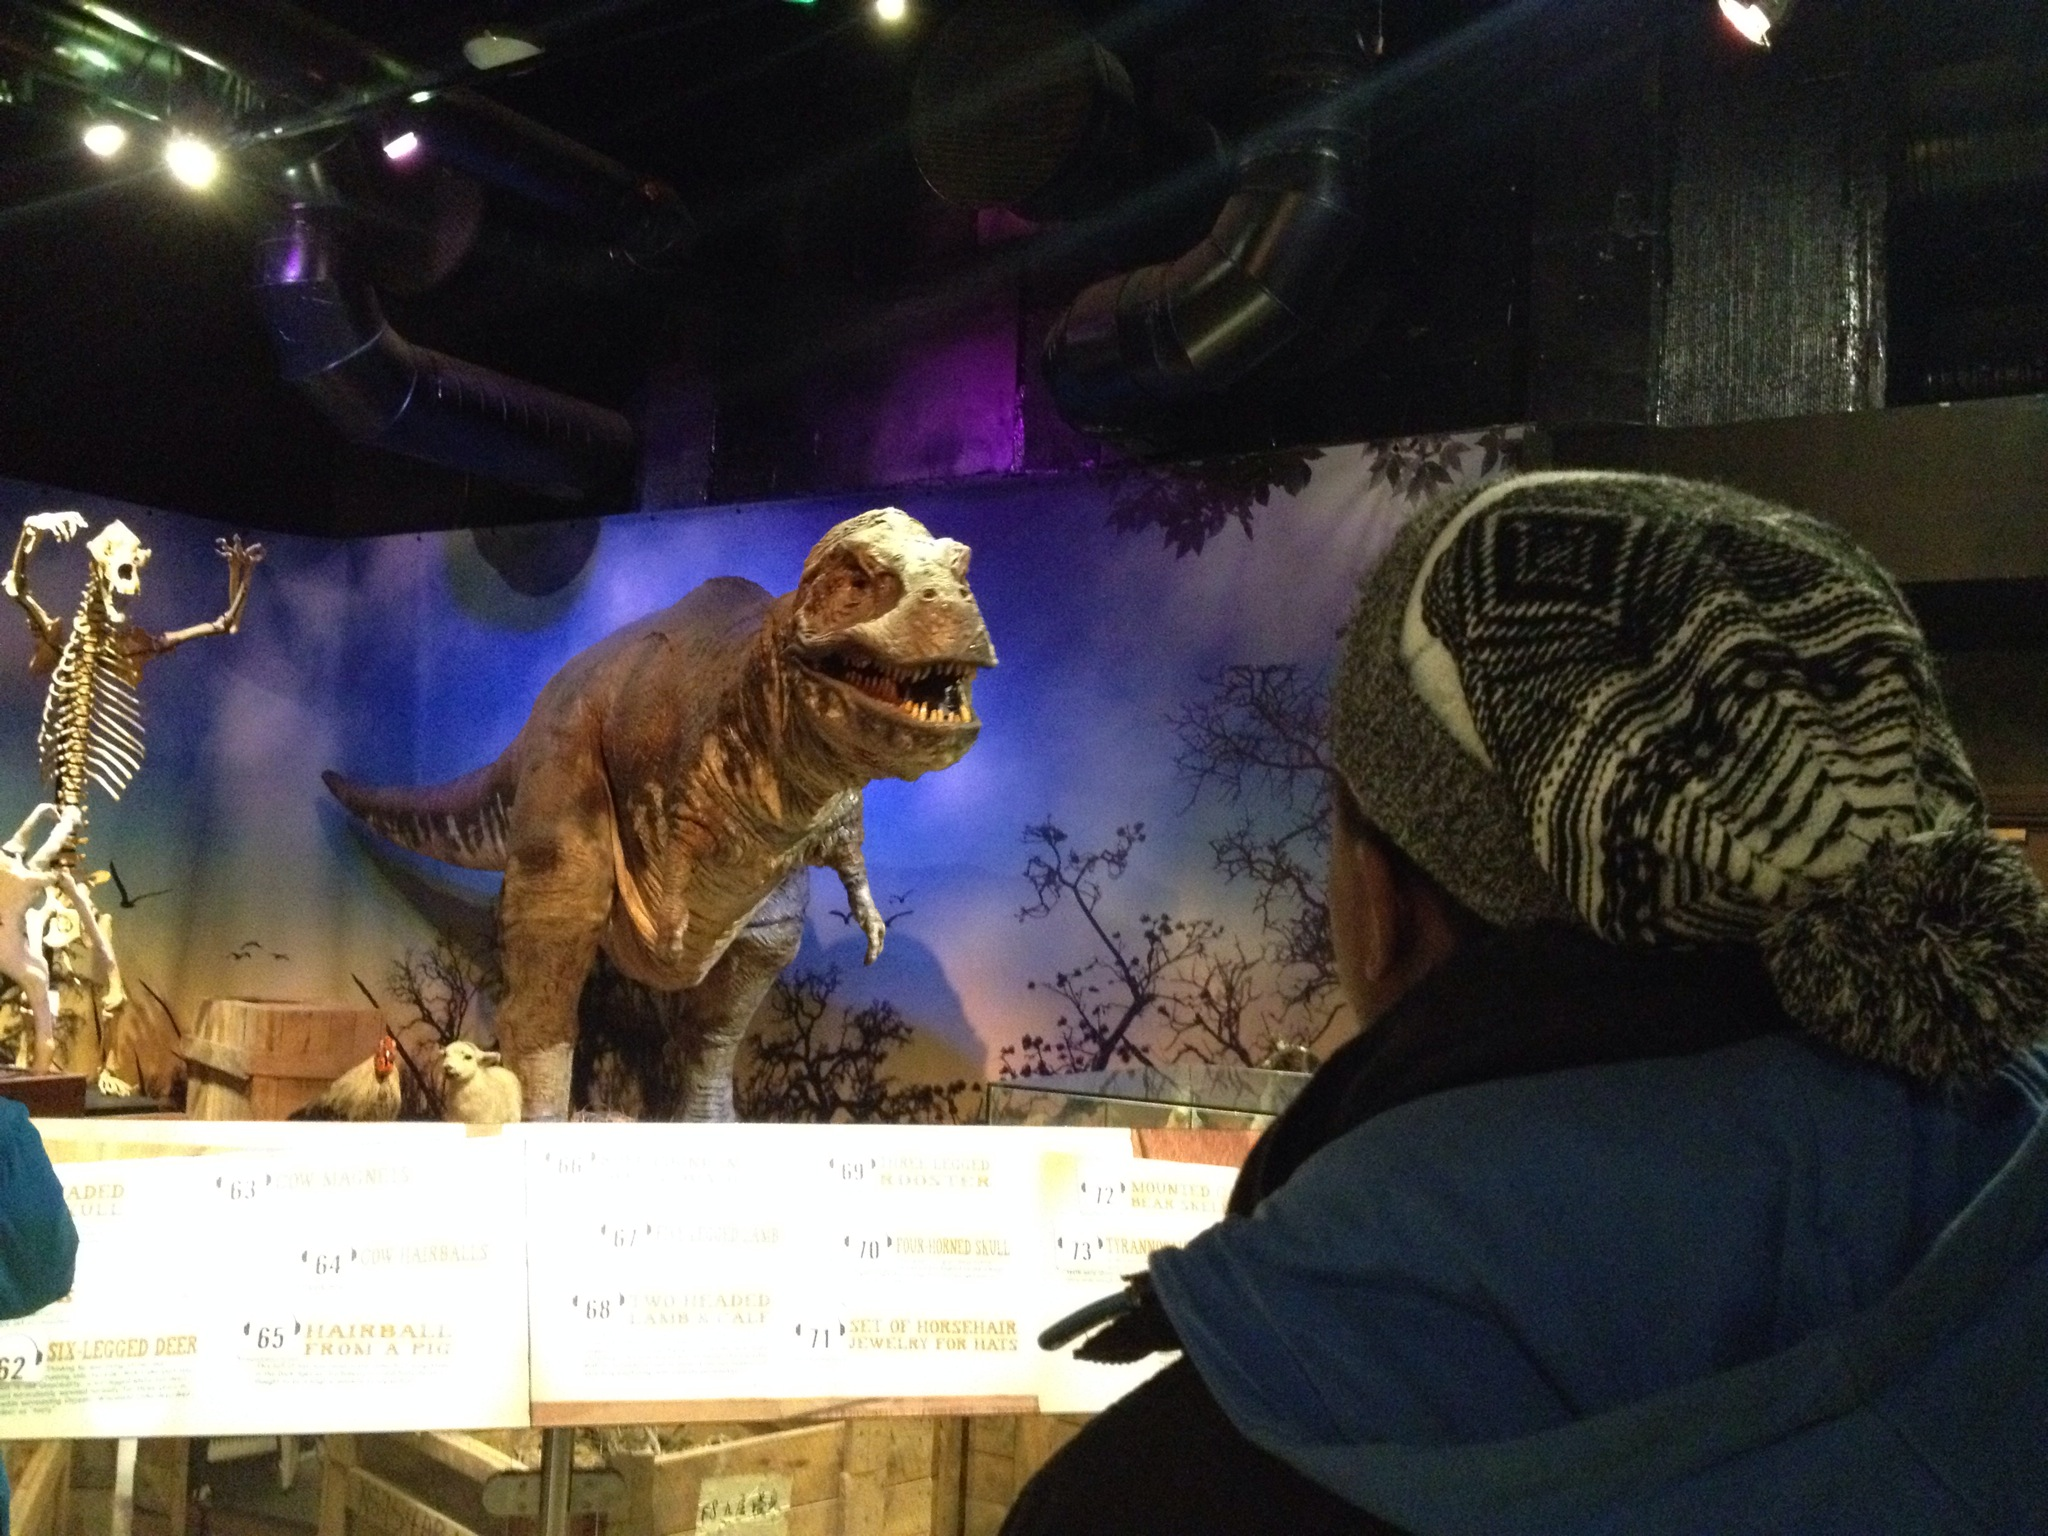 Ripleys Believe It or Not - Dinosaur